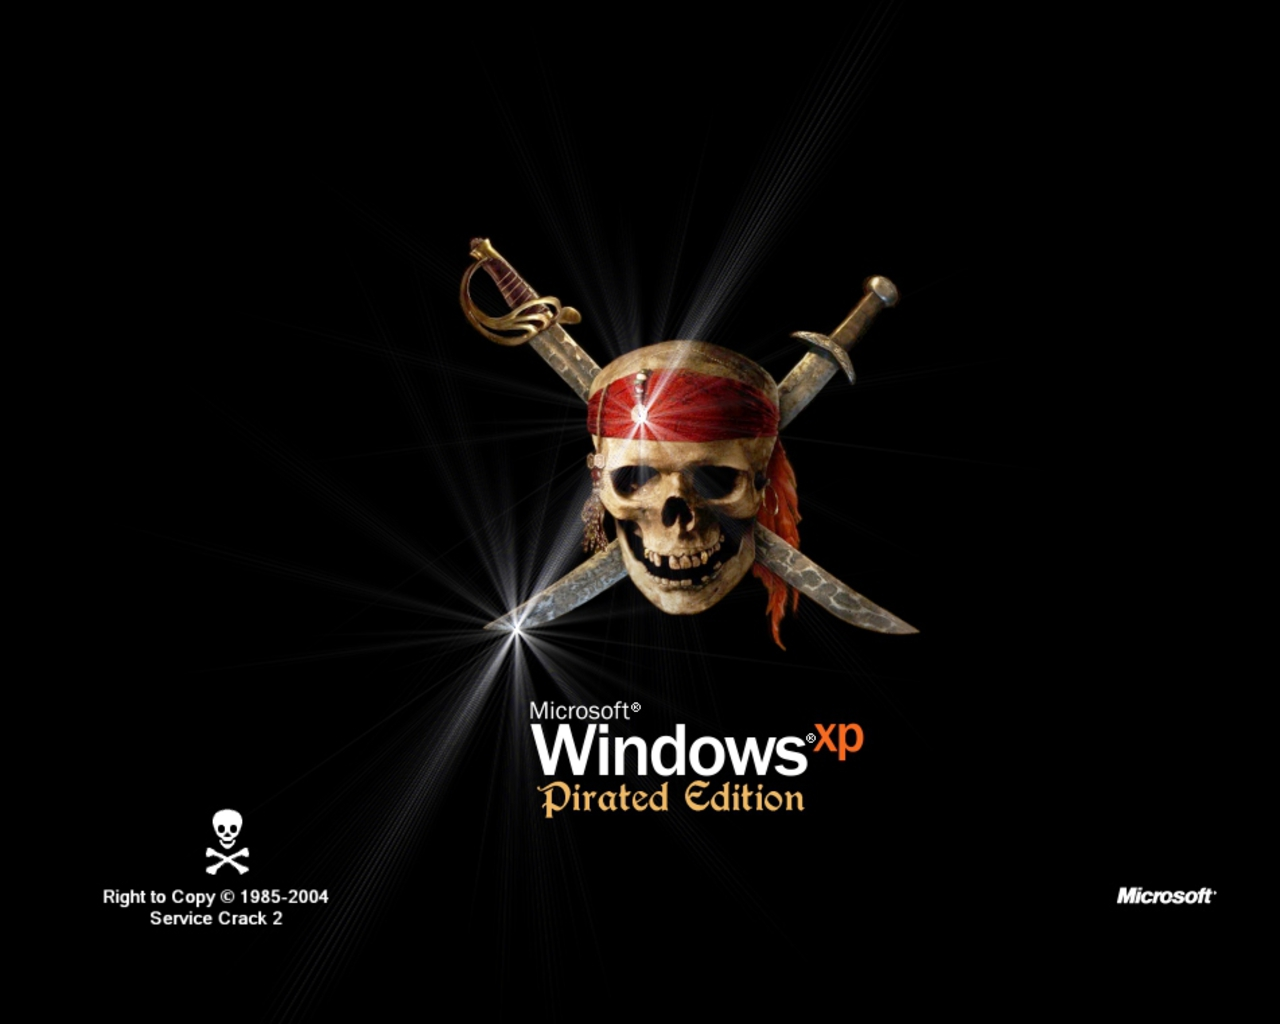 40 Cool and Funny Microsoft Windows Wallpapers 1280x1024